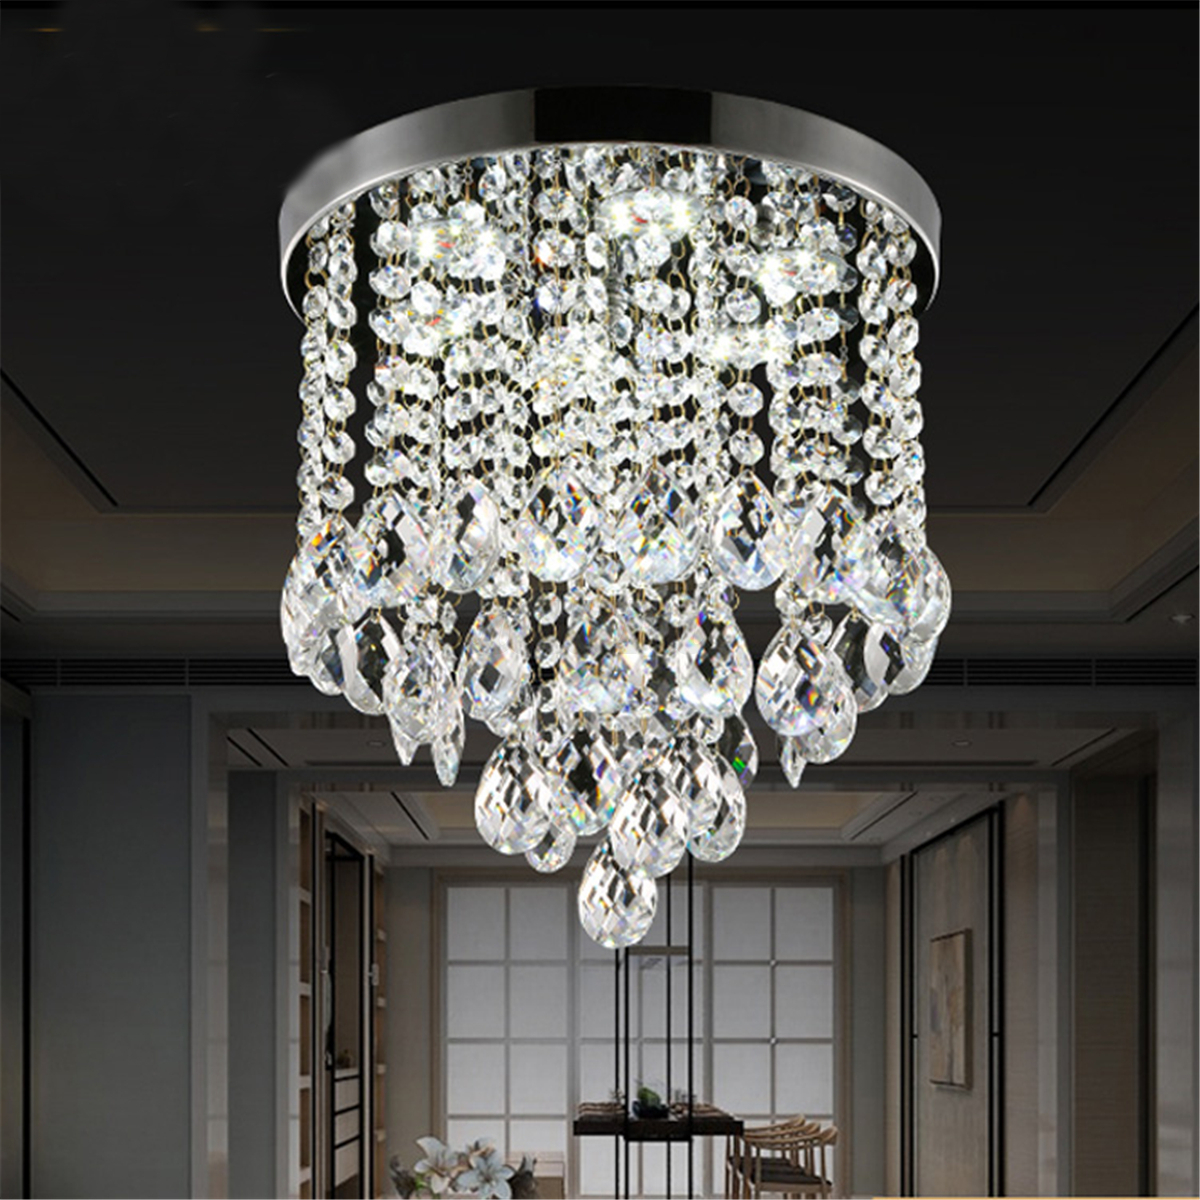 Dining Room Hanging Lamps Modern Crystal Pendant Light Ceiling Lamp Chandelier